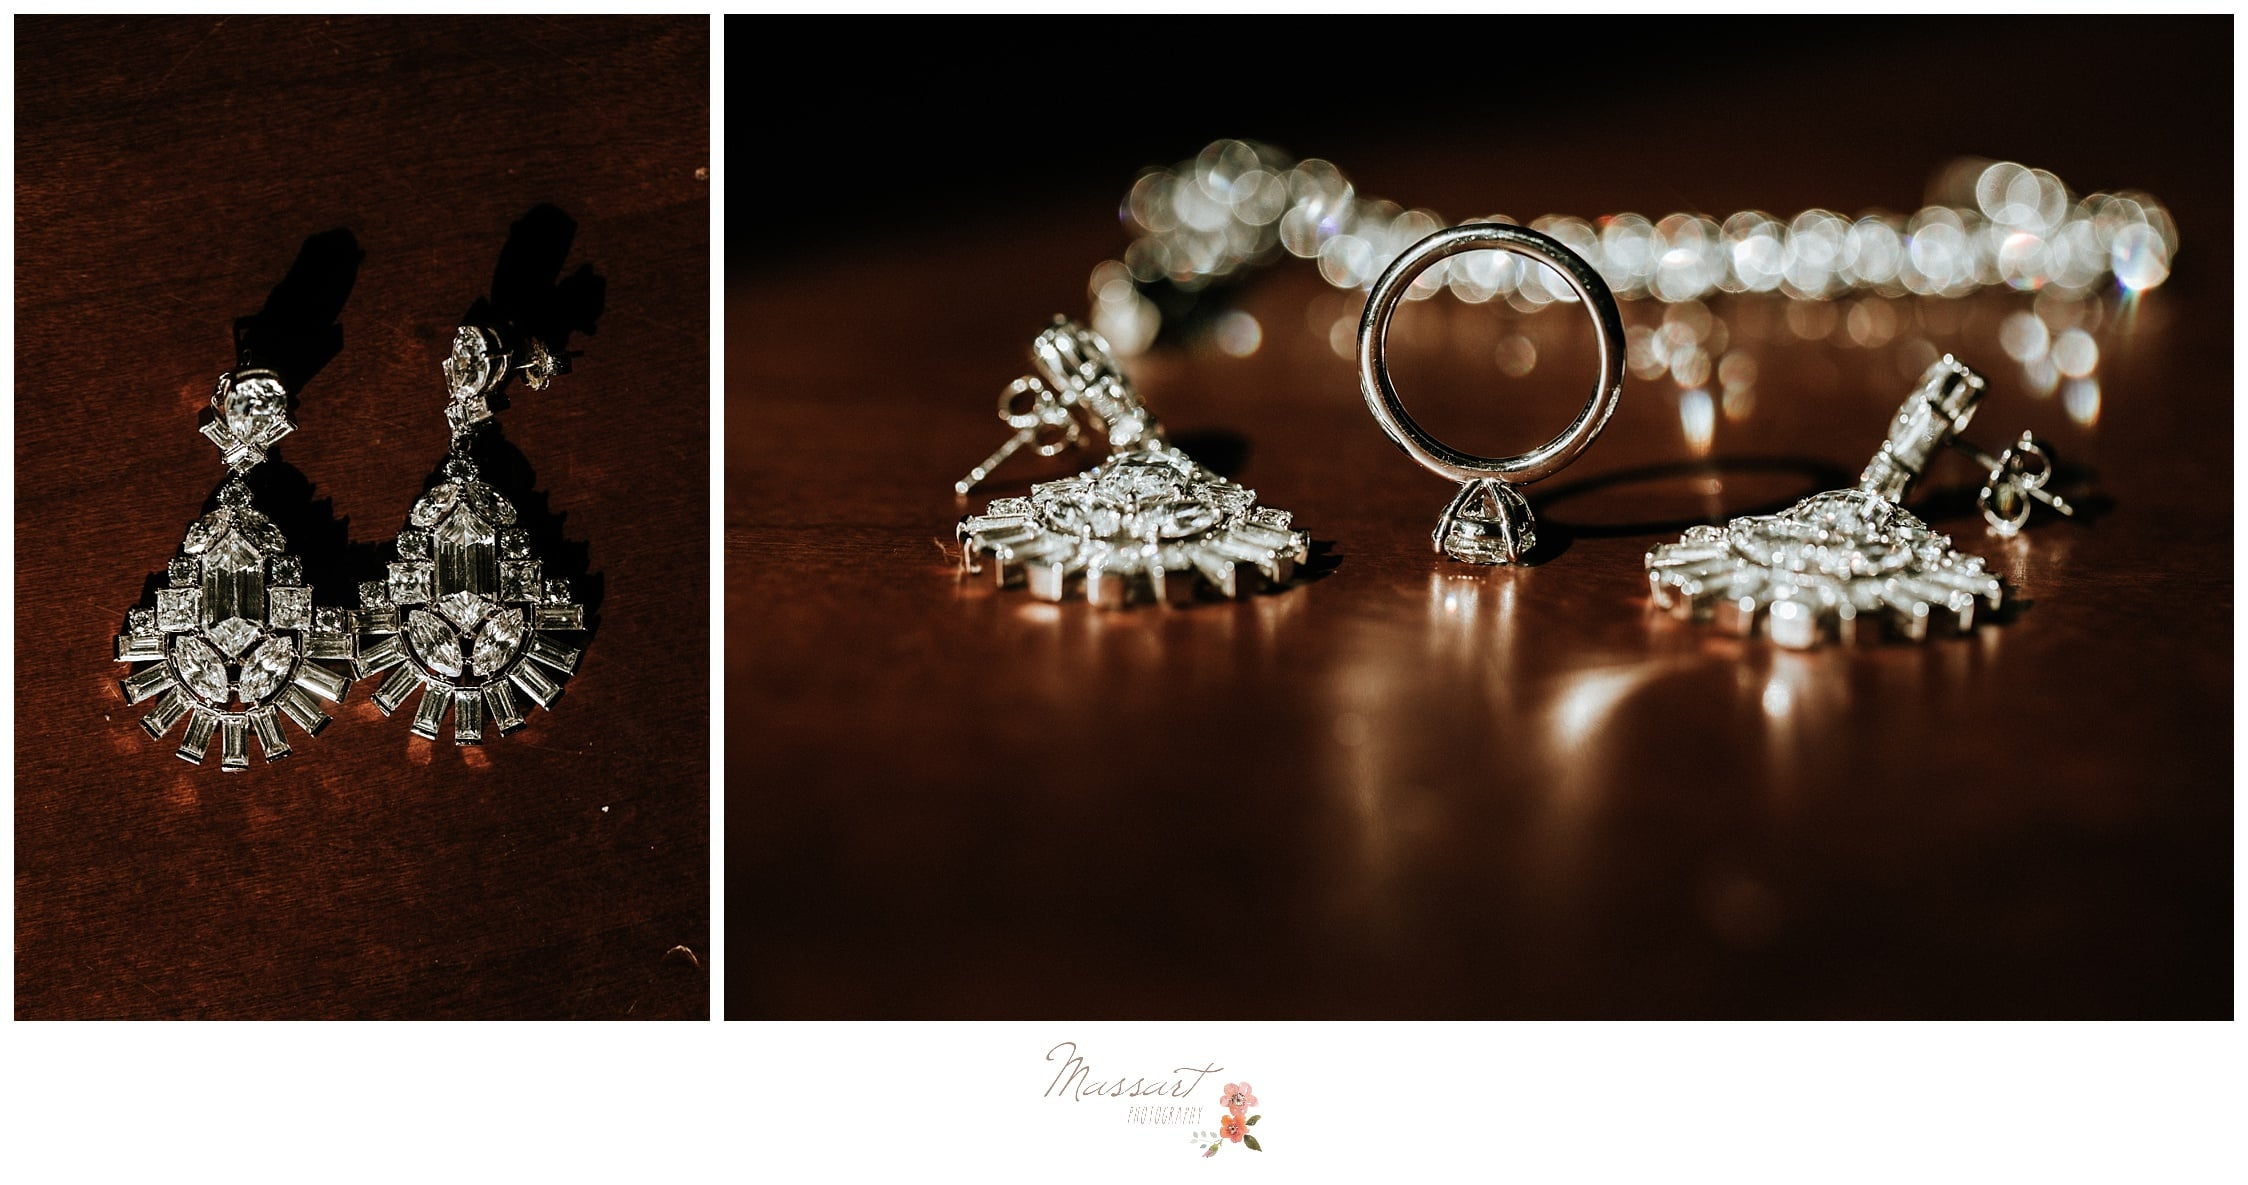 Detail portraits of the bride's jewelry and her wedding rings photographed by Massart Photography RI